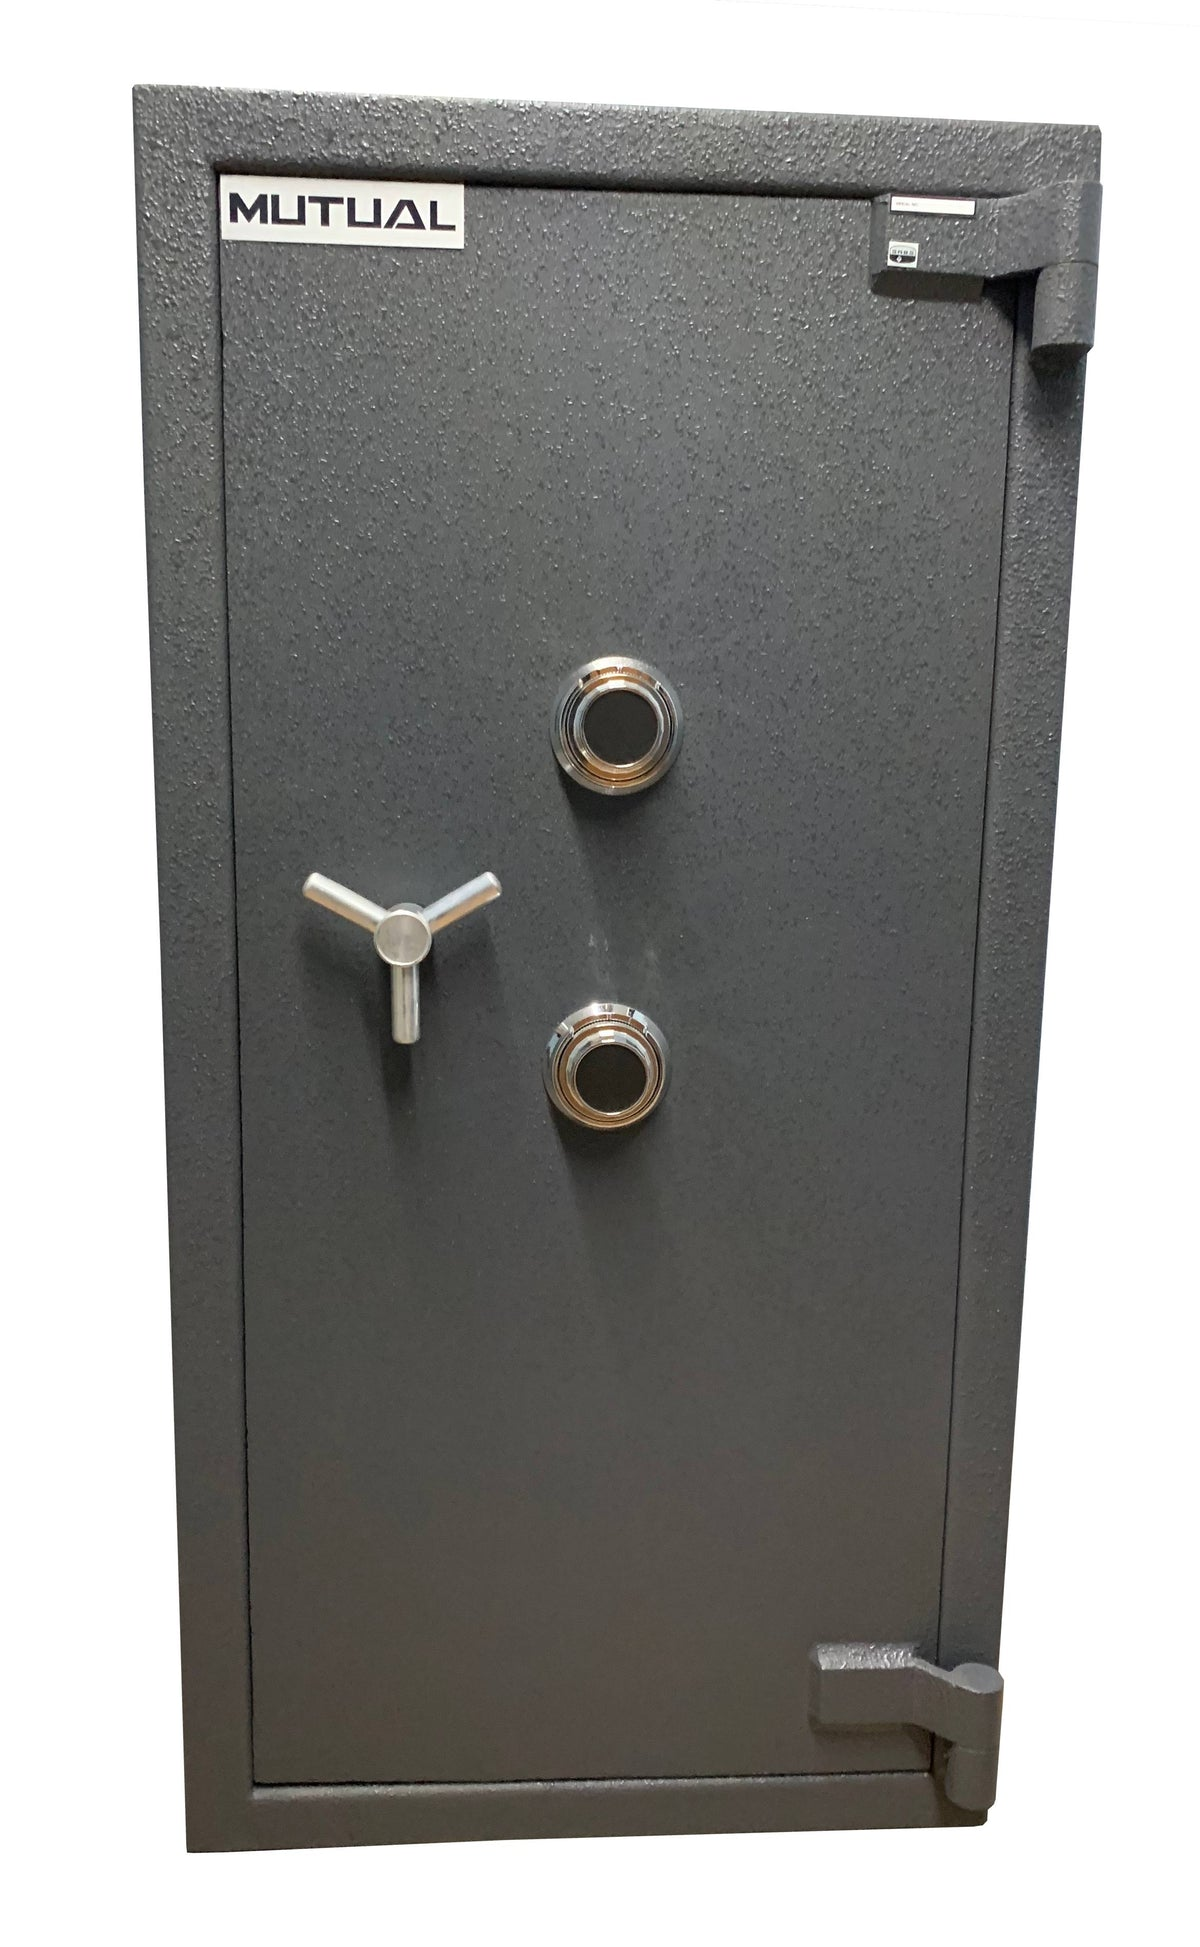 High Security Burglar Fire Safes - Mutual AS-4 TL-15 Composite High Security Burglar & Fire Safe